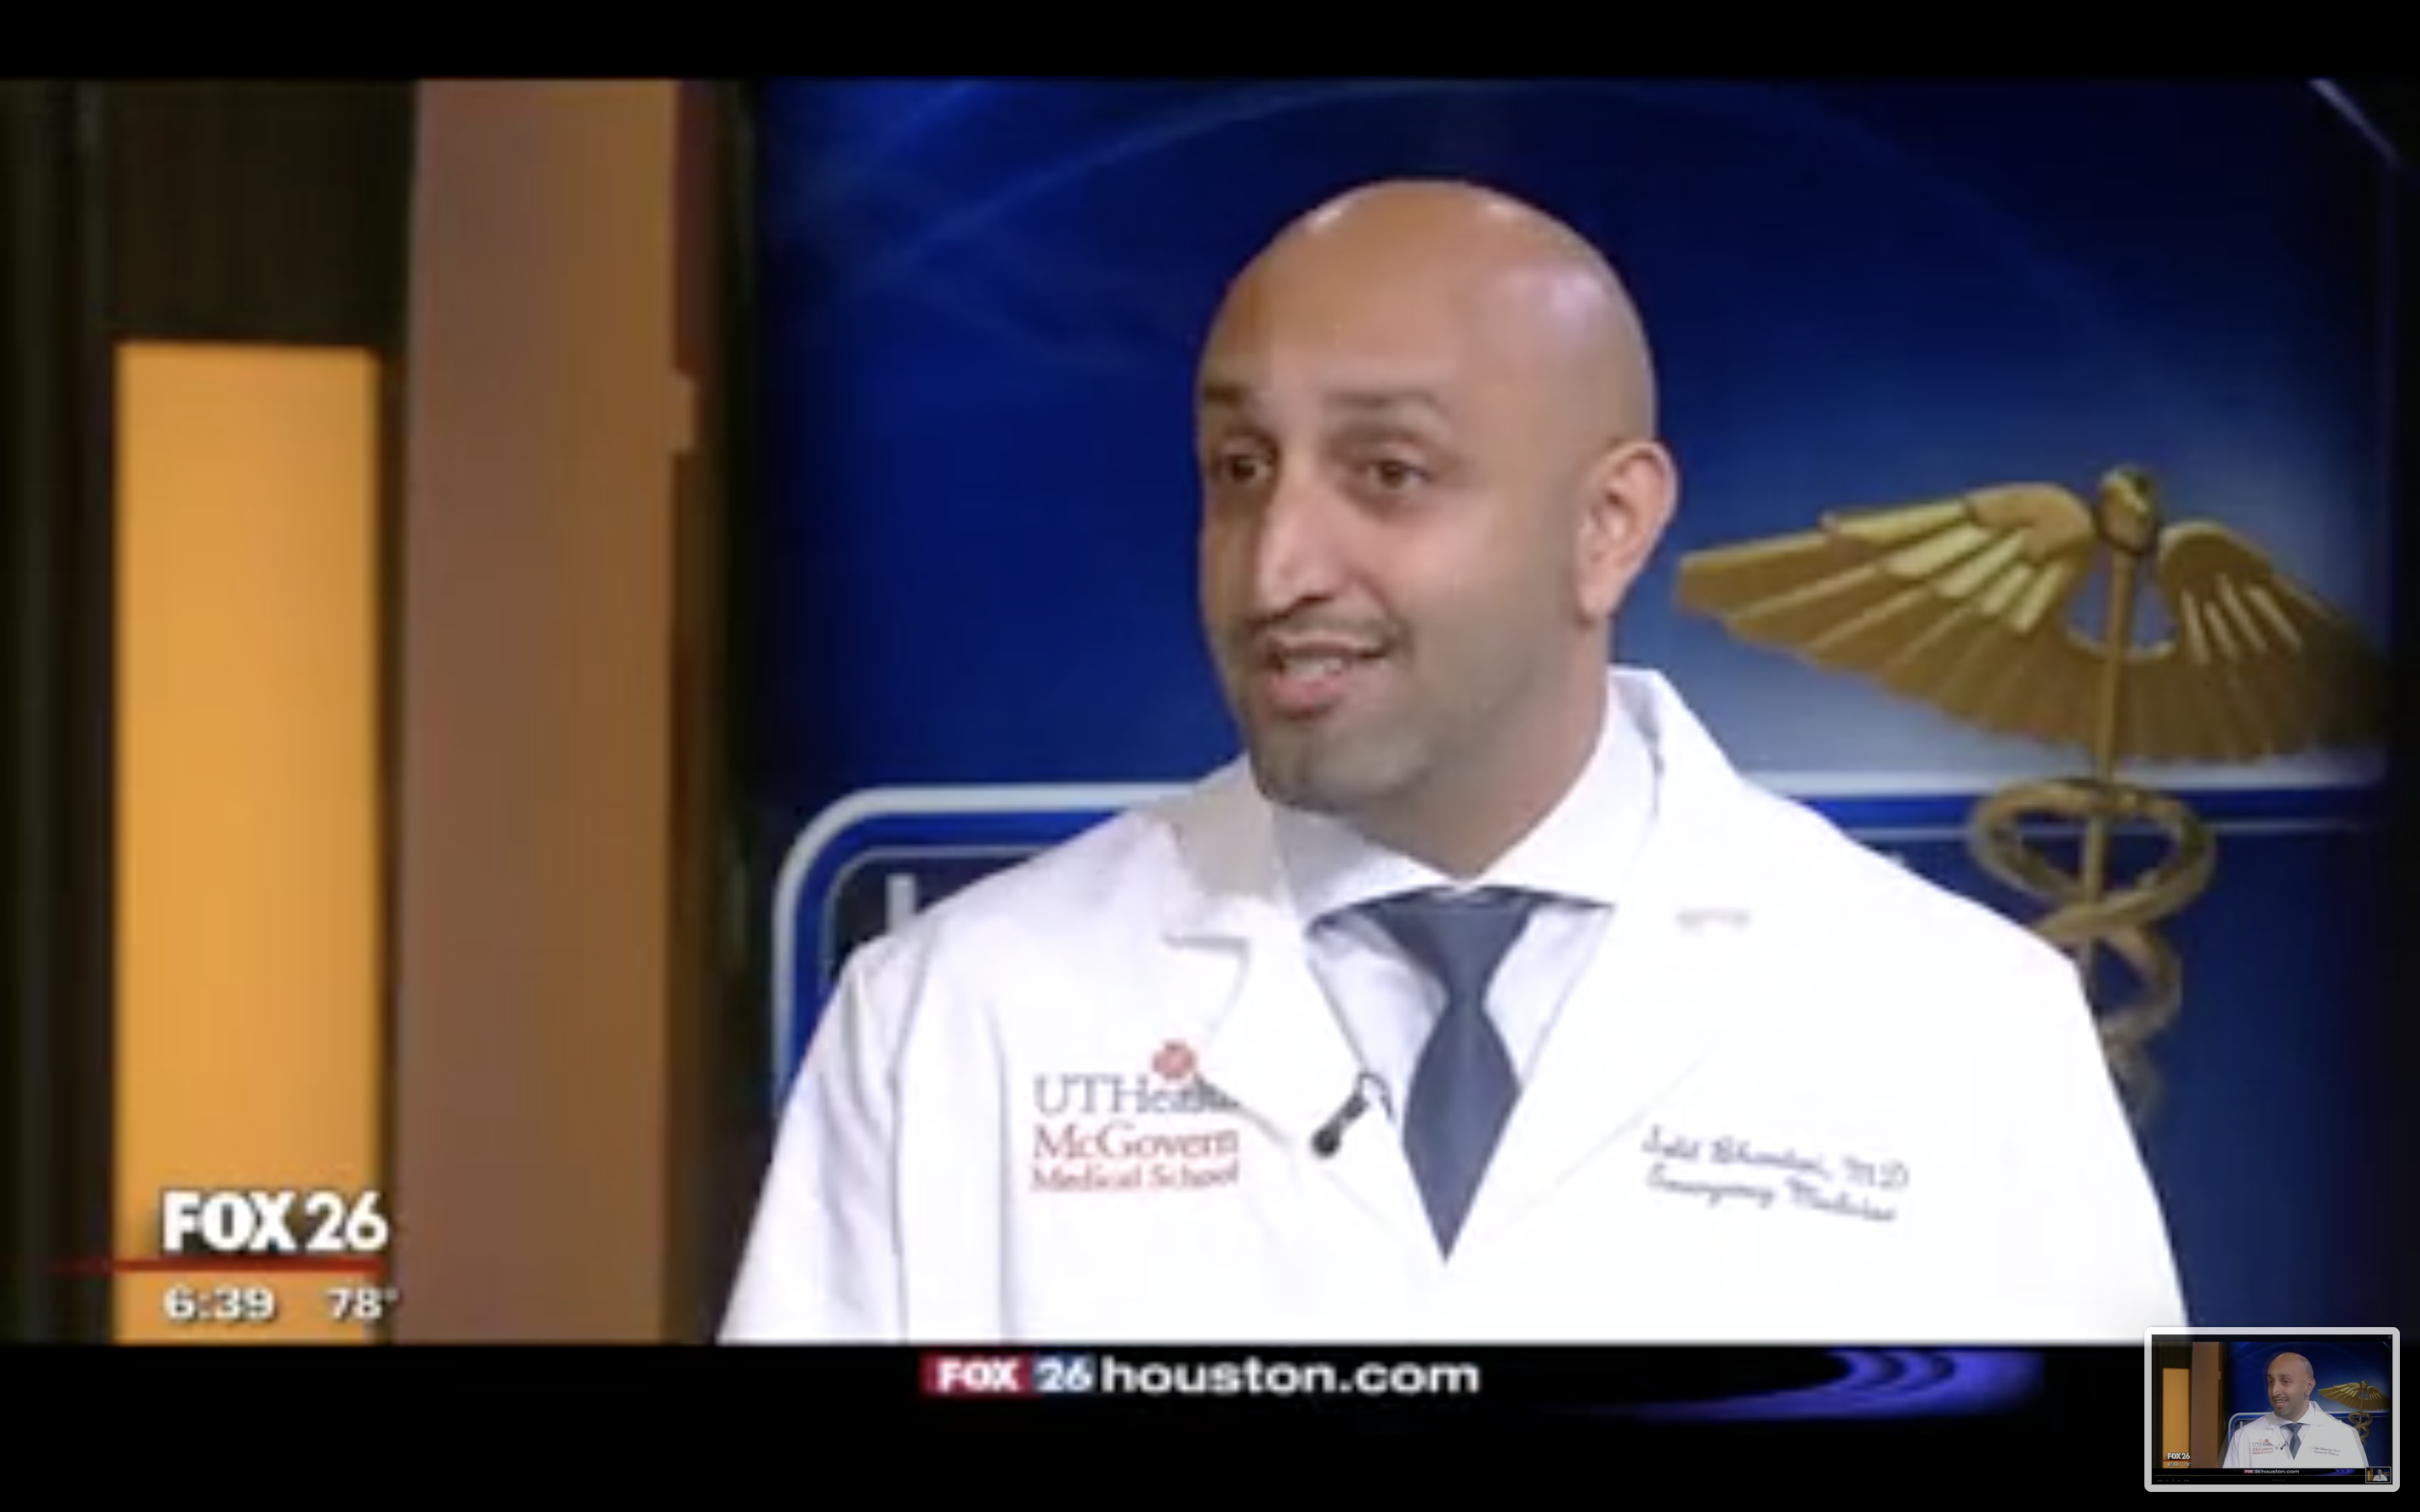 Dr. Bhandari talking about Walk with a Doc